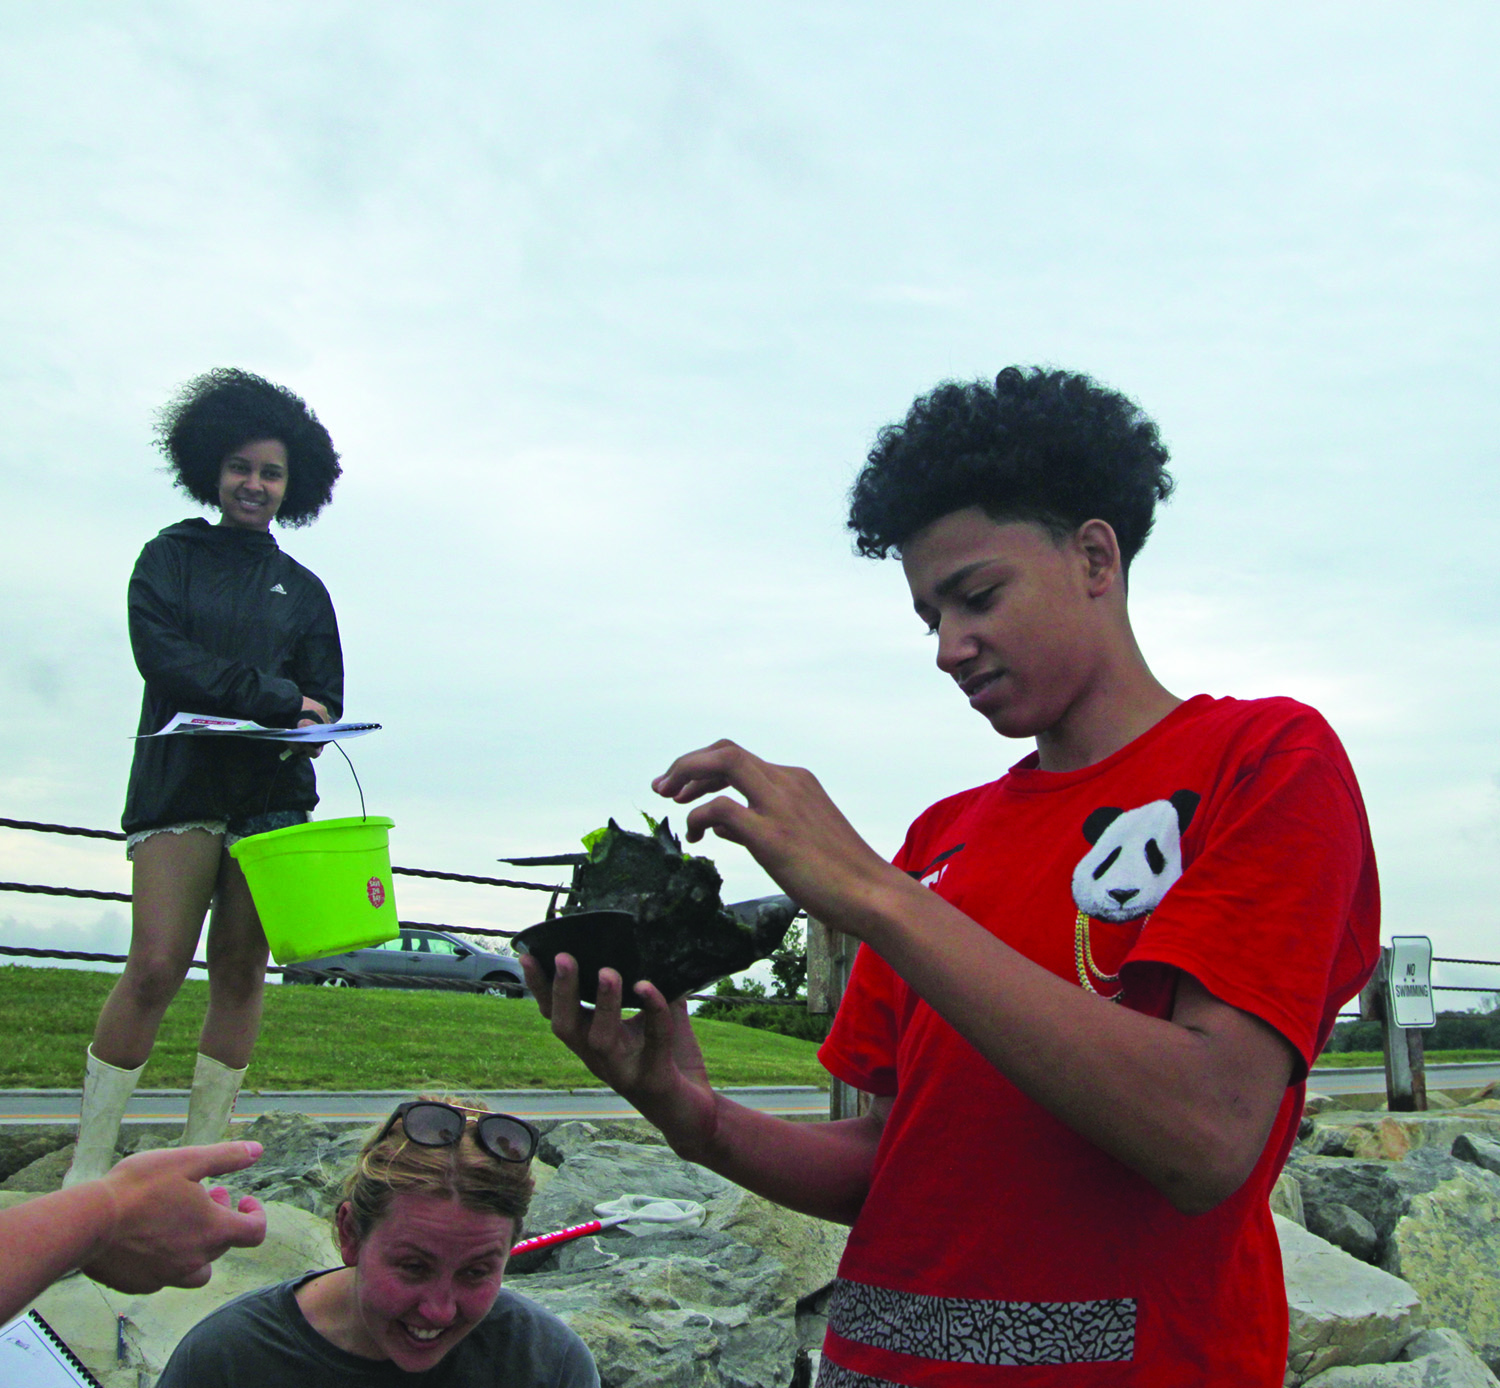 Students examine a horseshoe crab they caught at Colt State Park.